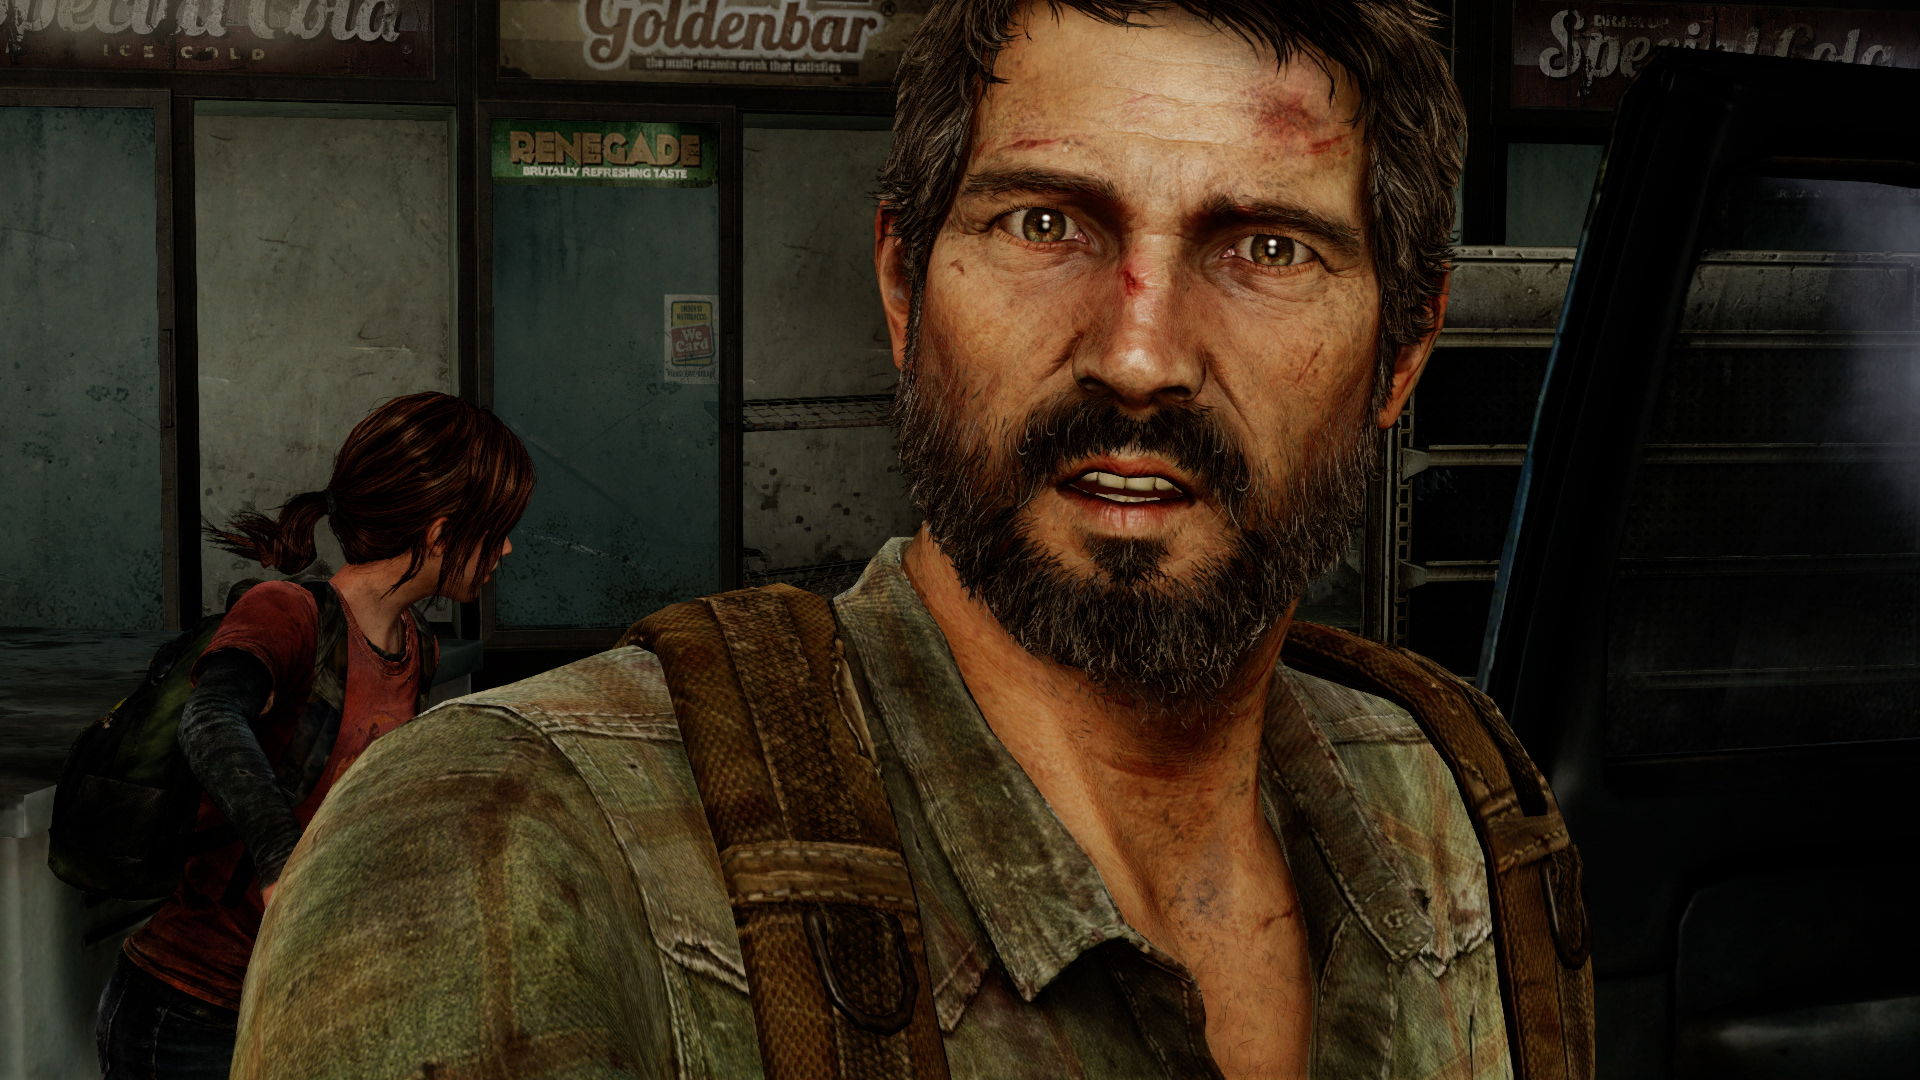 The Last of Us by Naughty Dog